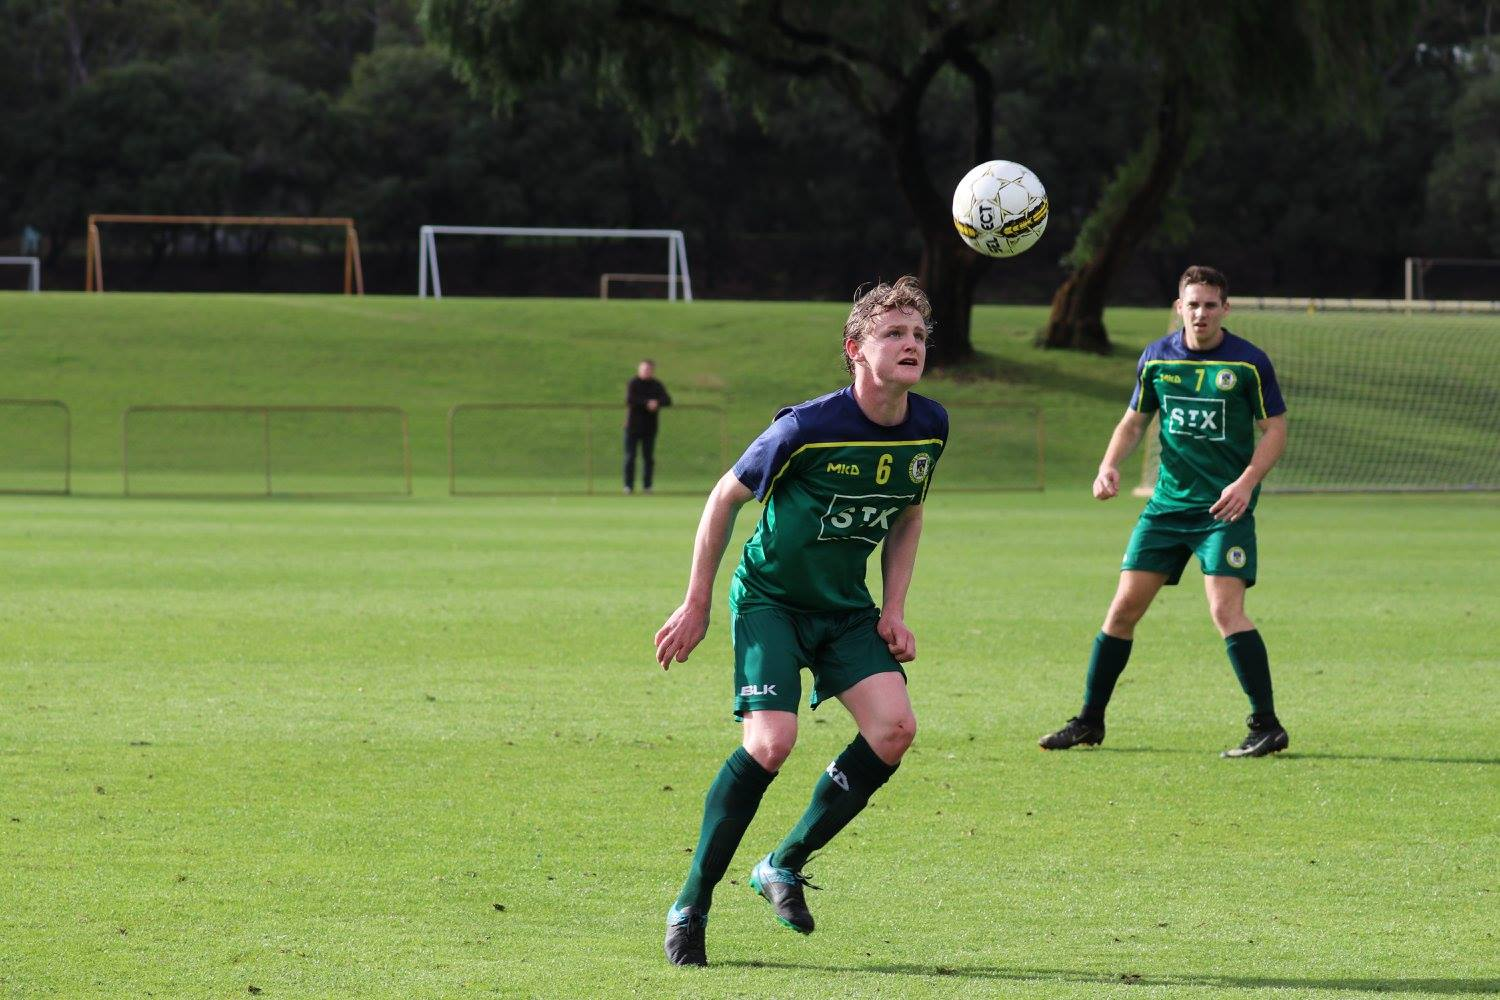 RORY DEVLIN IS BACK AFTER SERVING A ONE WEEK SUSPENSION - CREDIT: GABRIELE MALUGA